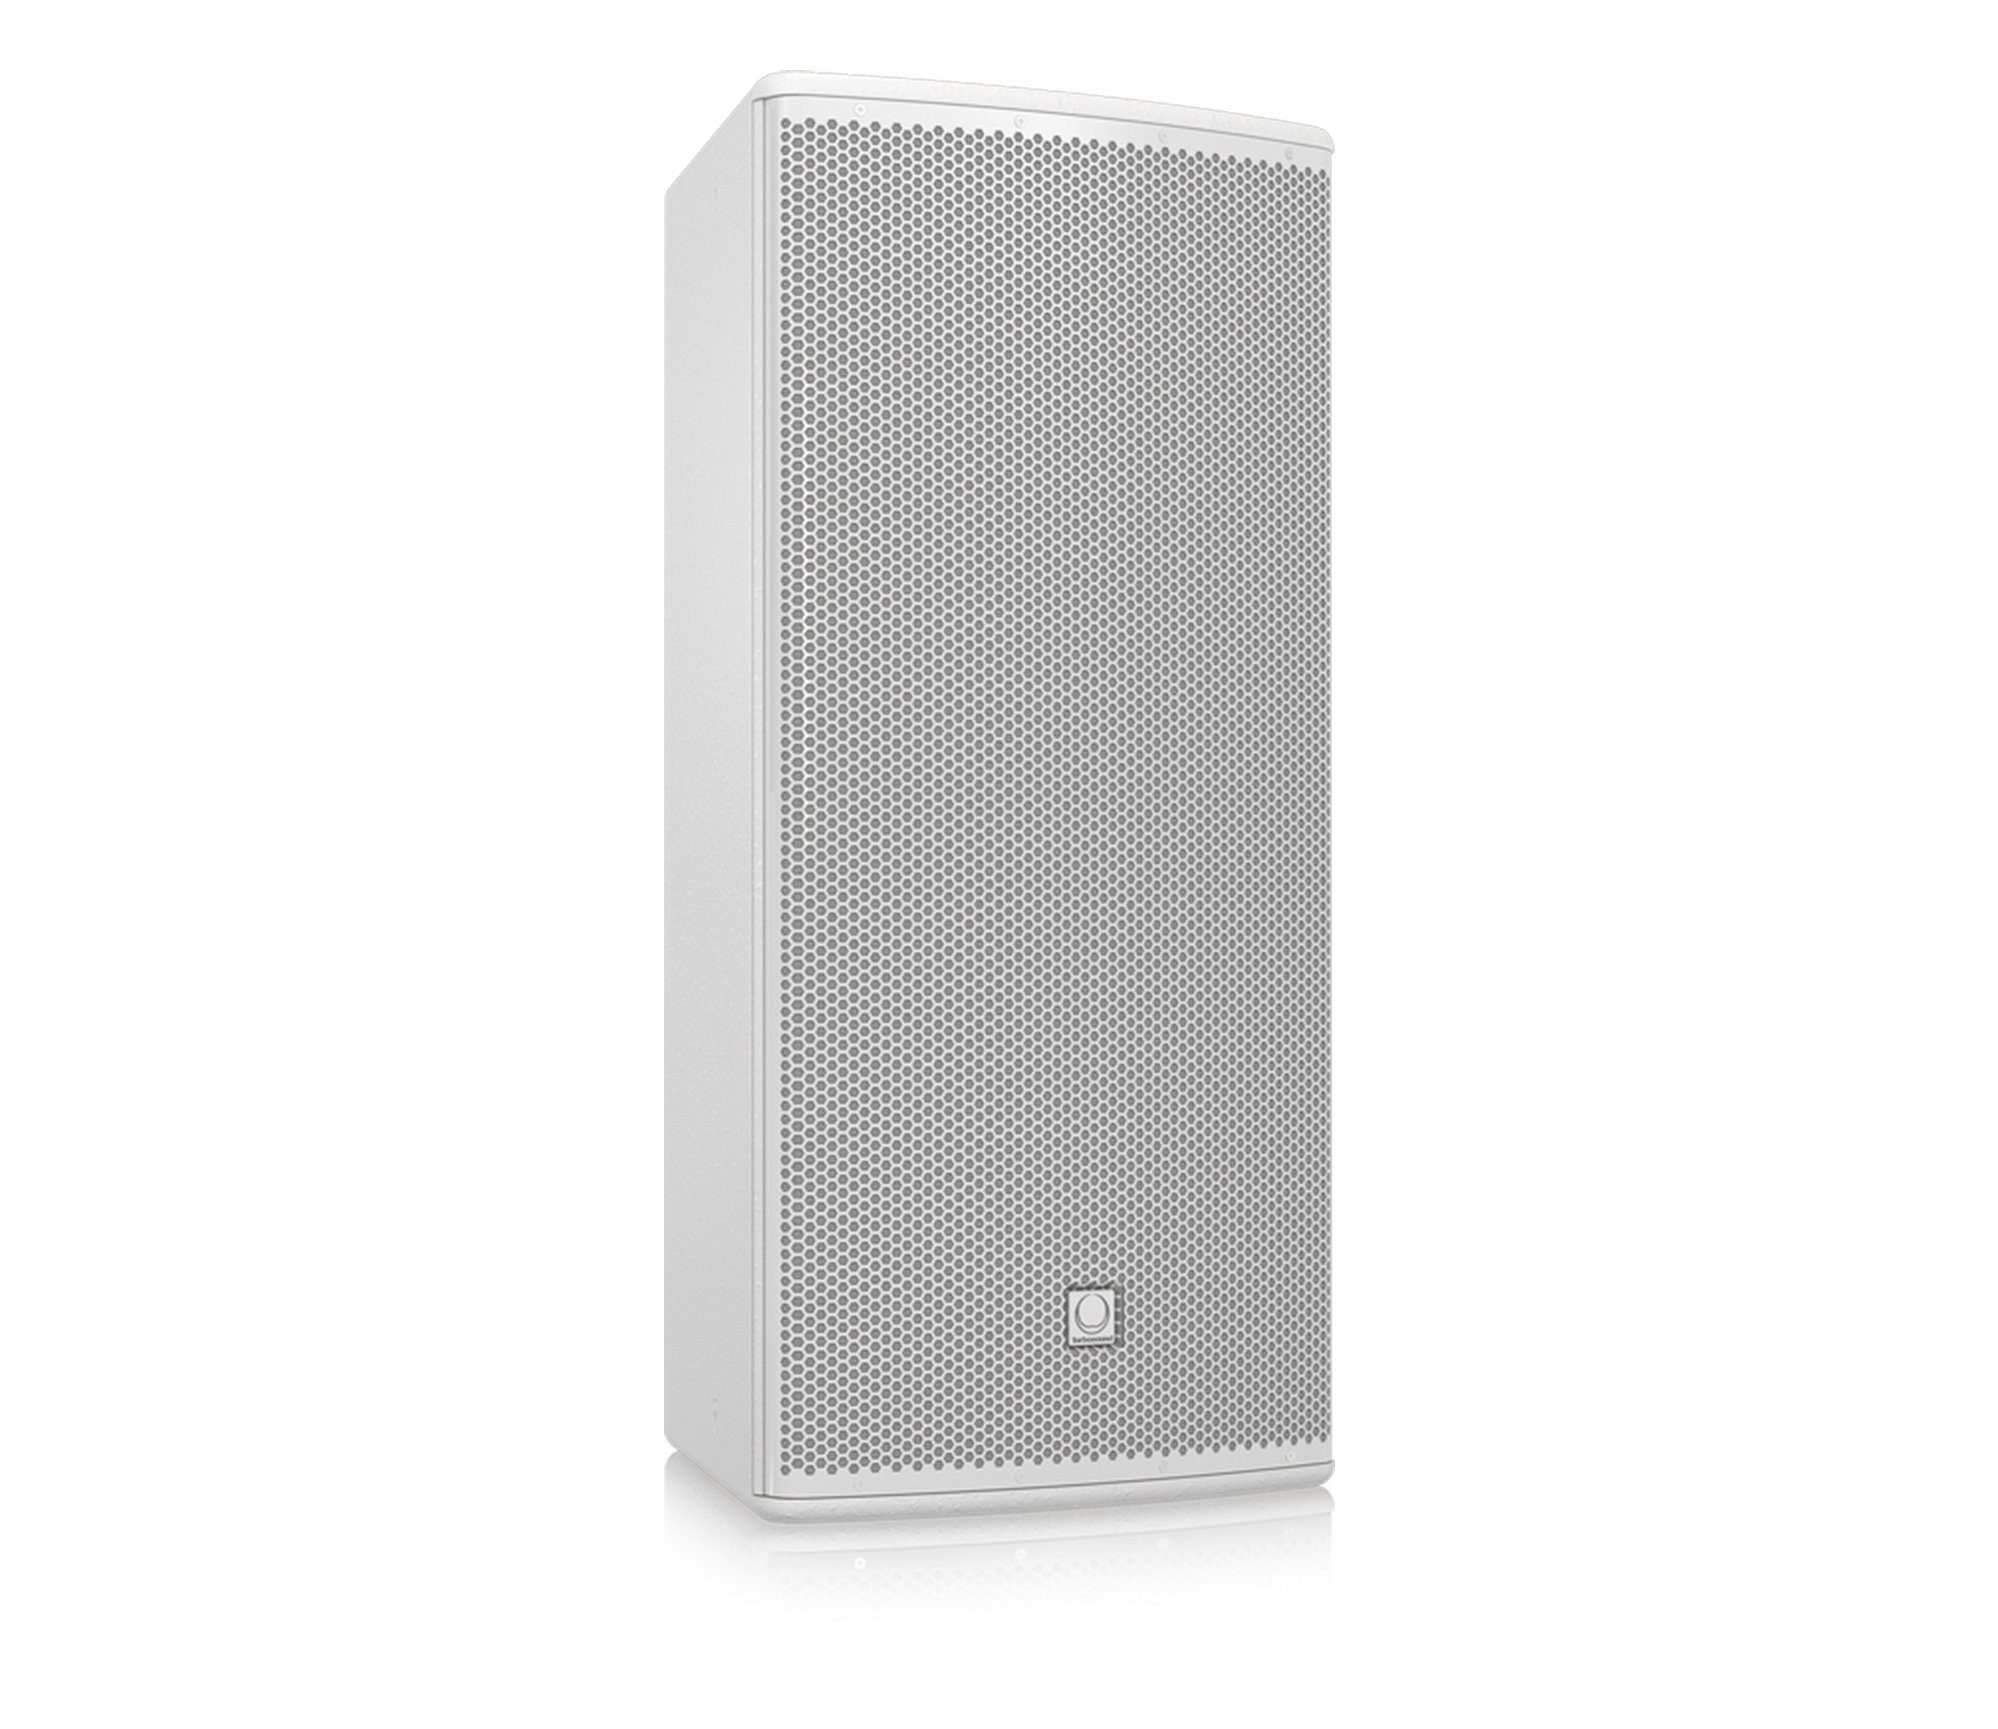 "Turbosound TCS-122/64-R-WH 12"" 600W (8 Ohms) Weather Resistant 2-Way Full-Range Passive/Bi-Amp Loudspeaker with 60°x40° Dispersion in White TCS122/64-R-WH"